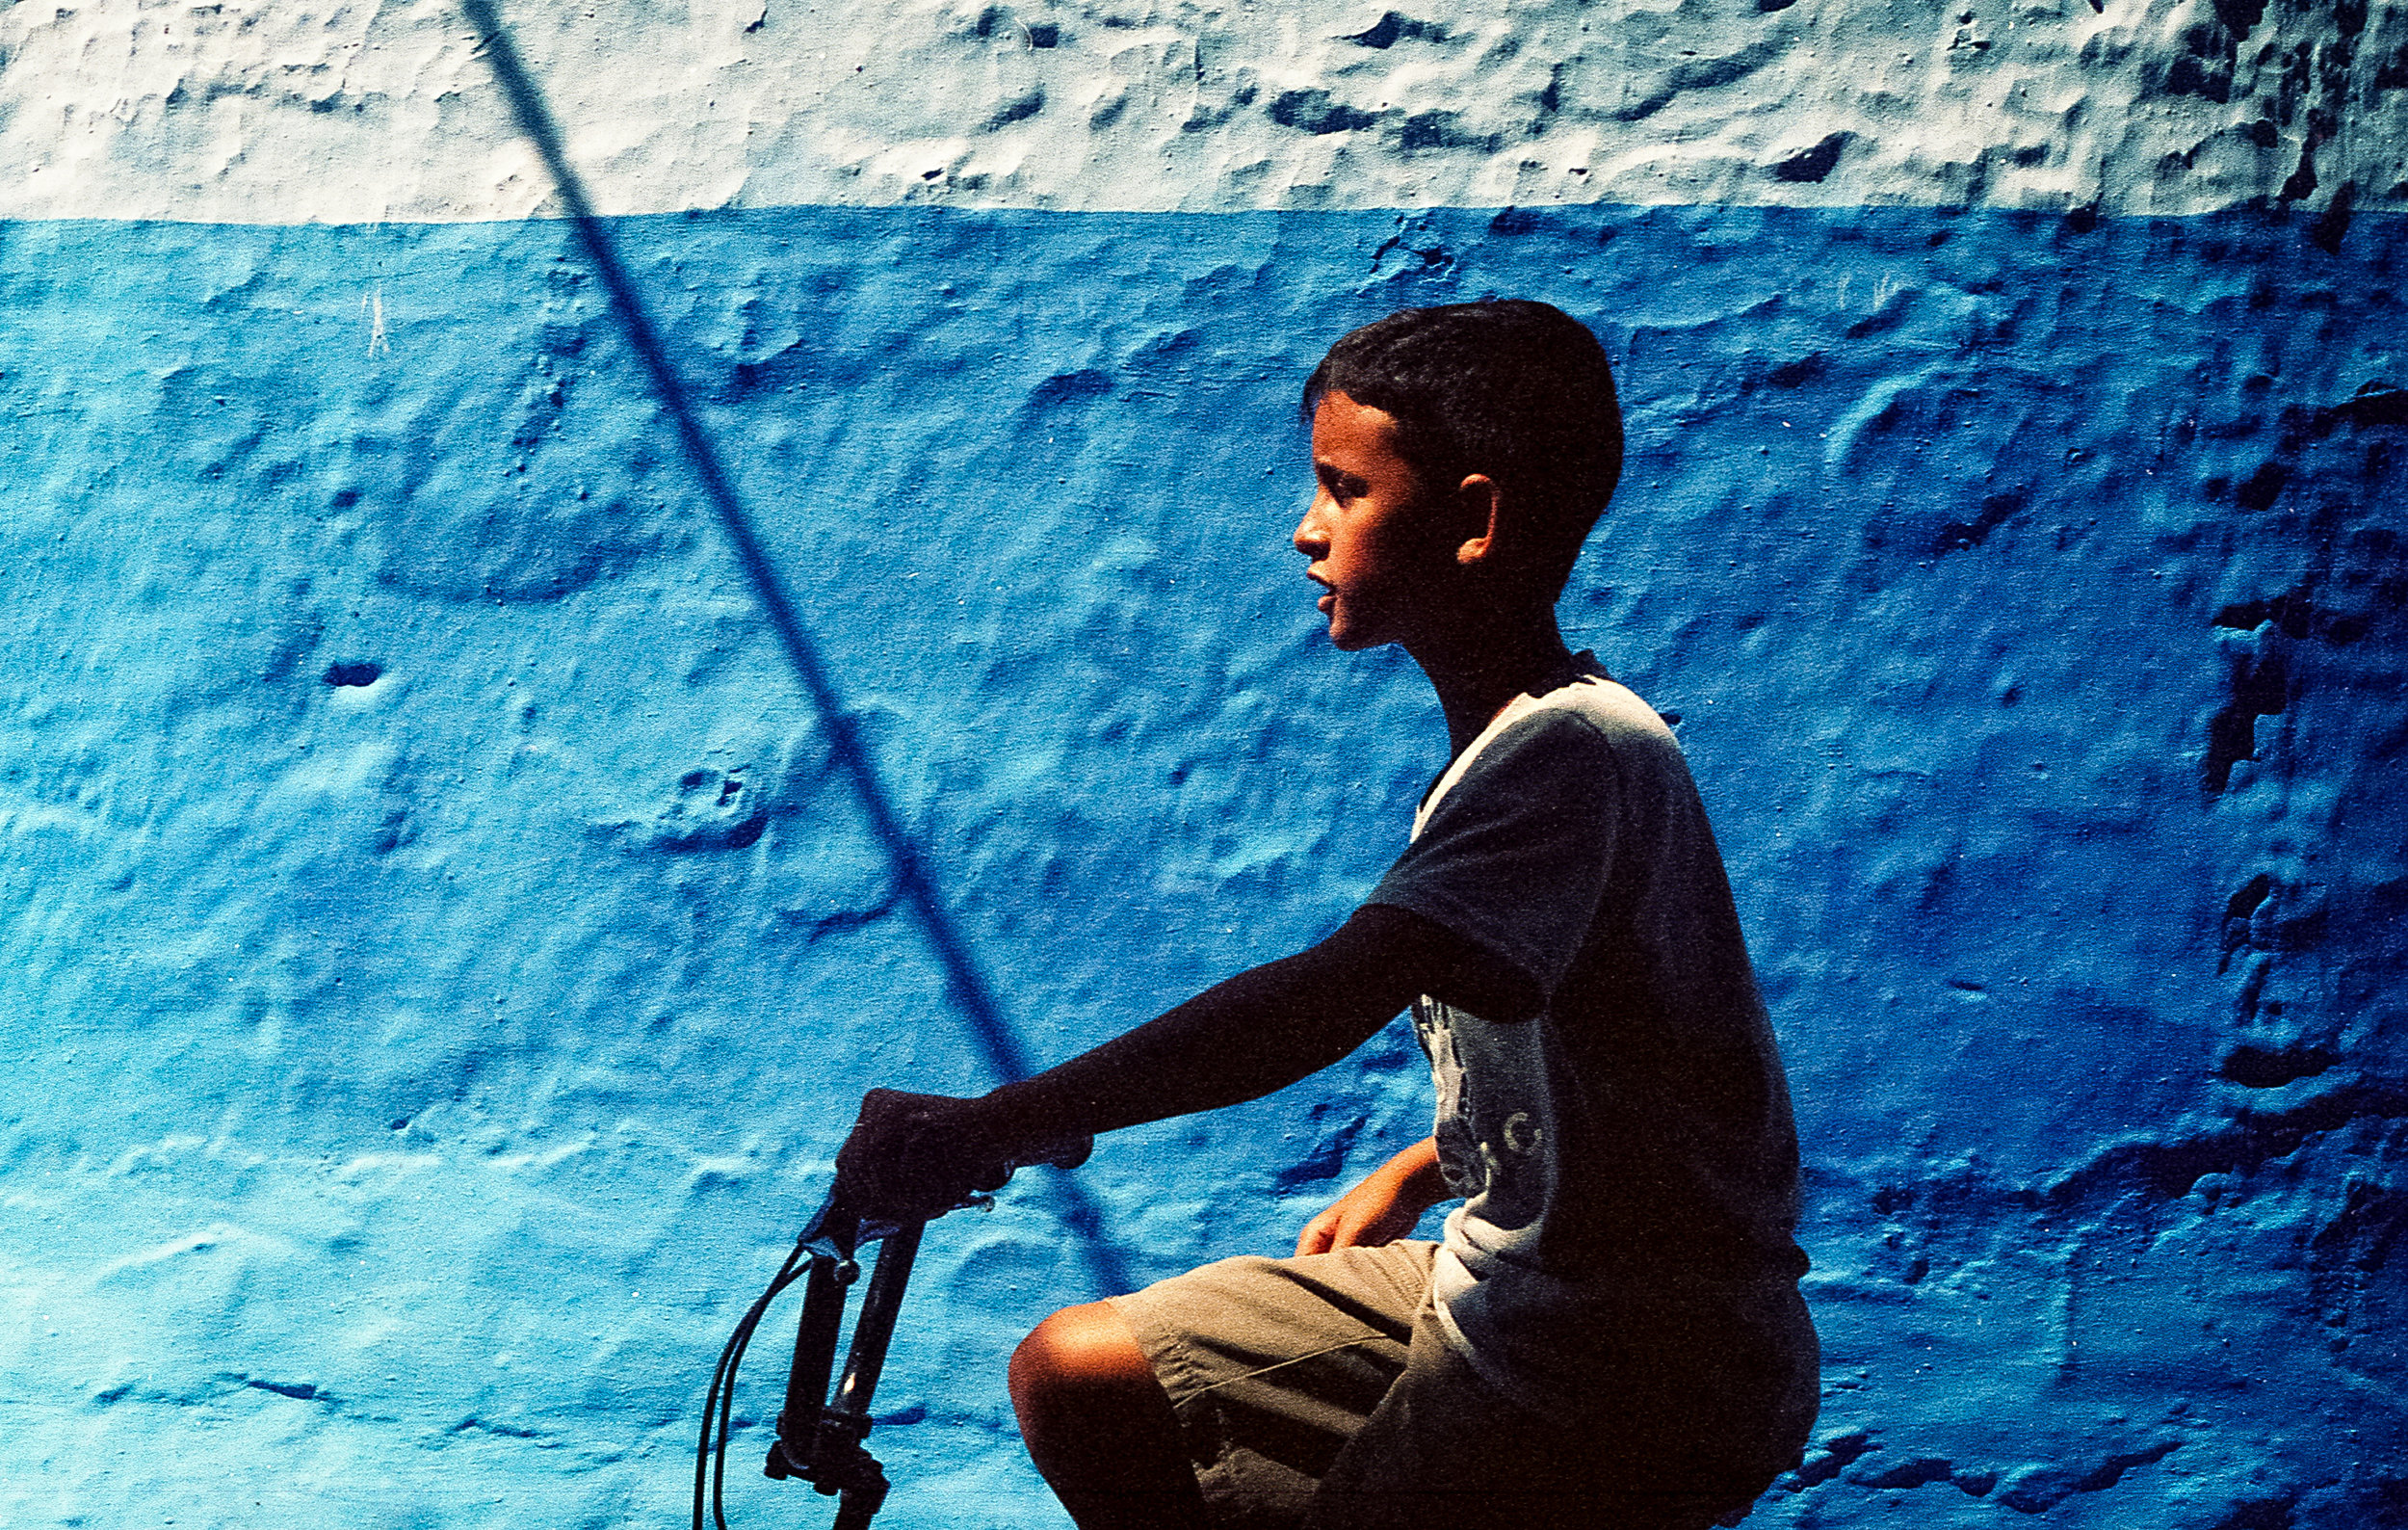 Boy riding a bike in the streets of Chefchaouen, Morocco. Summer 2017 (Portra 400)